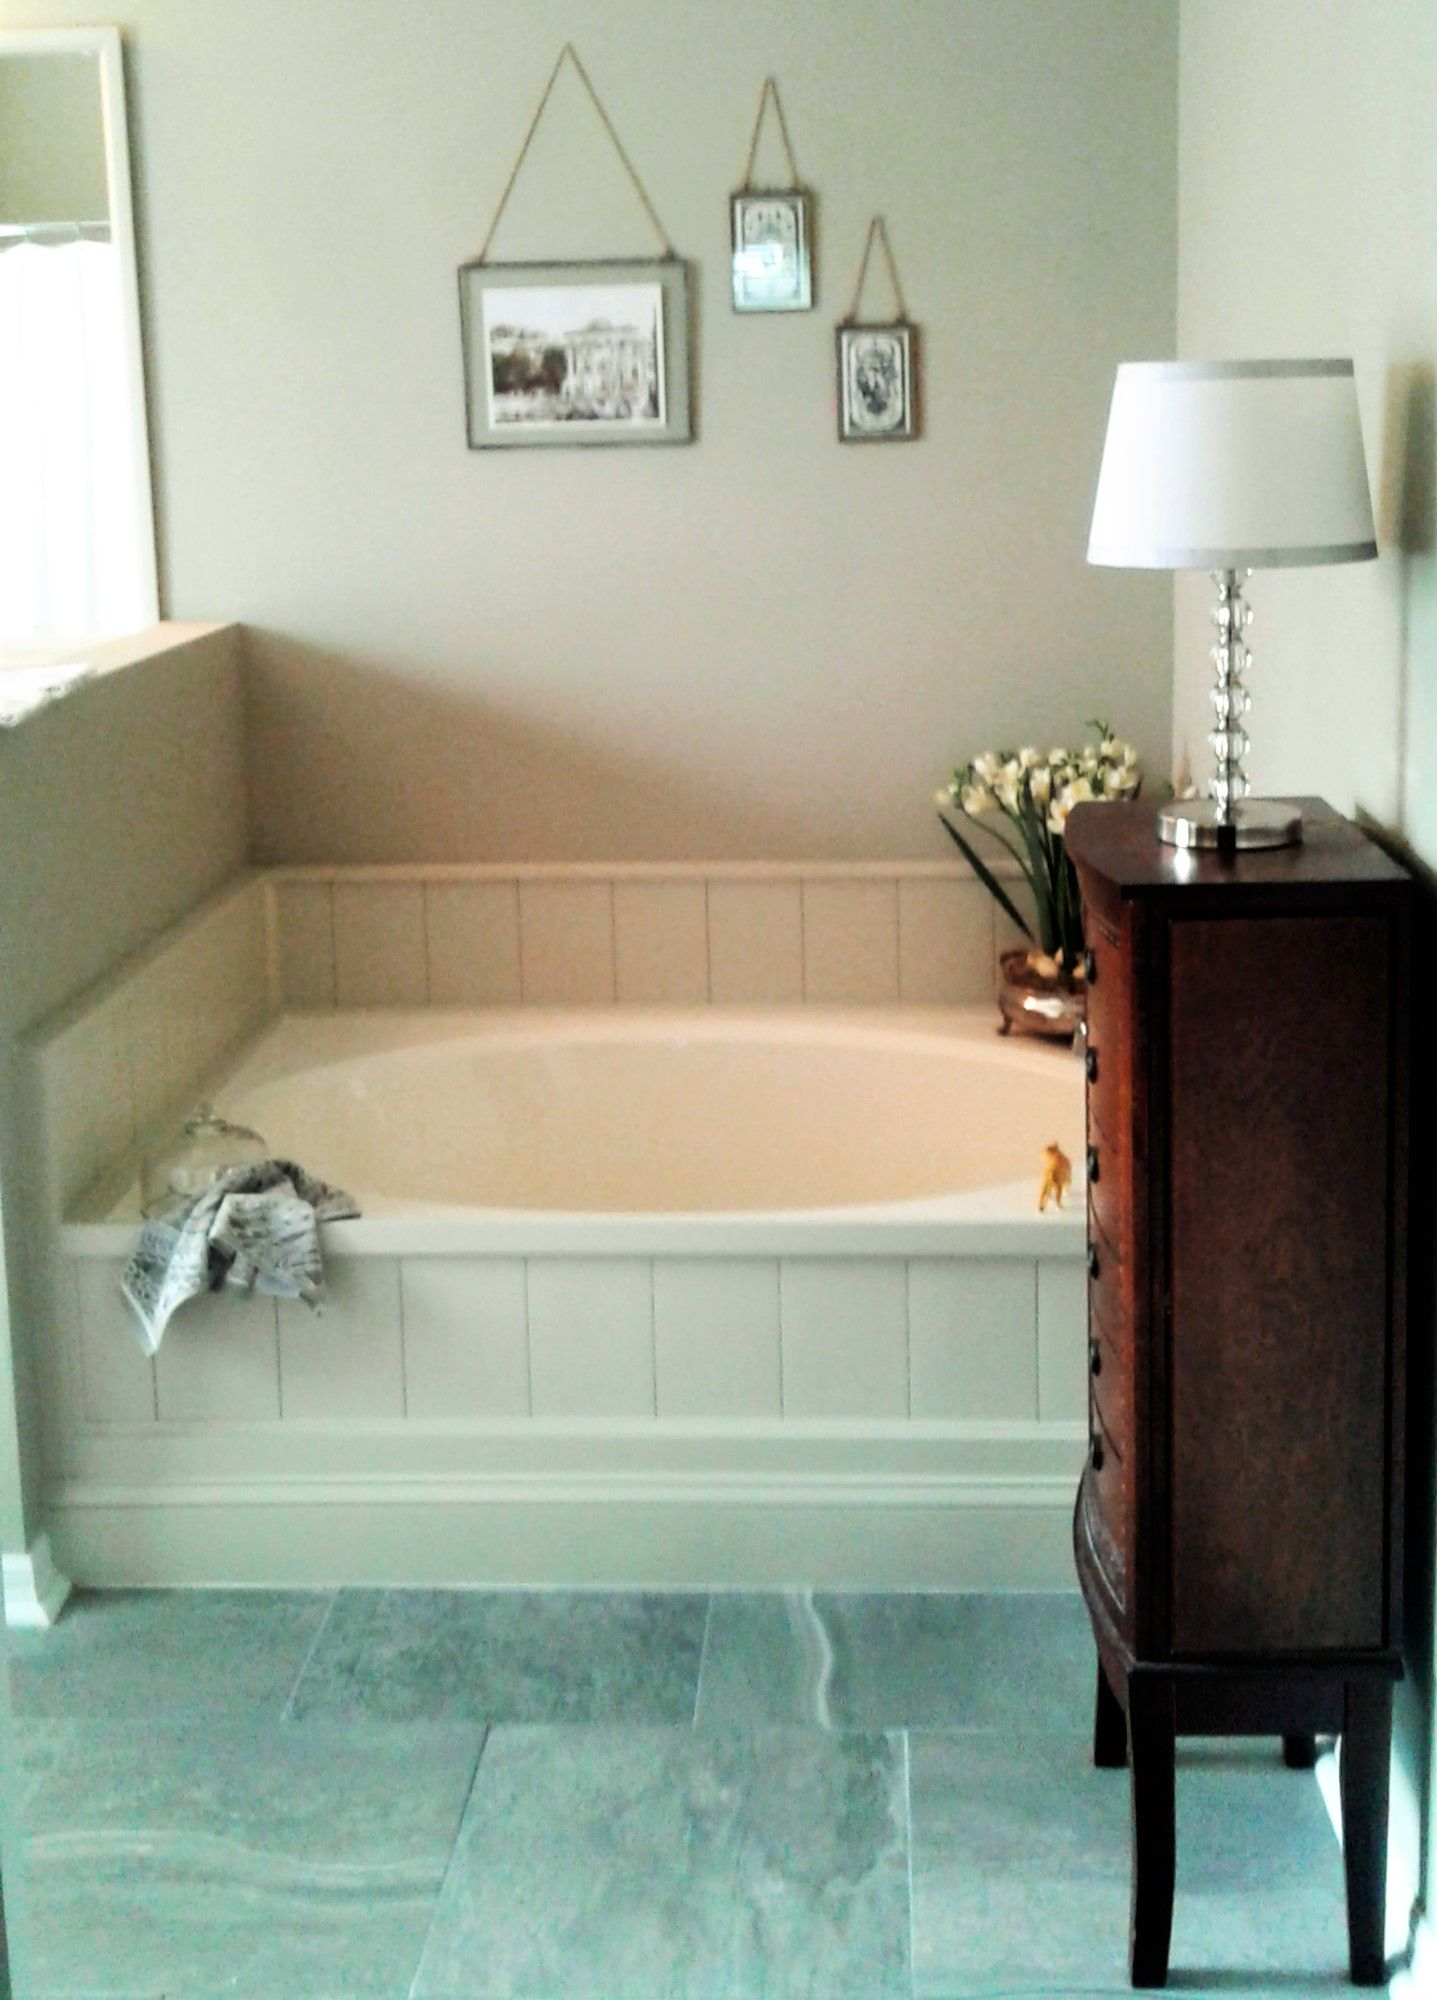 DIY tub surround for builder grade molded tub. Used peel and stick ...